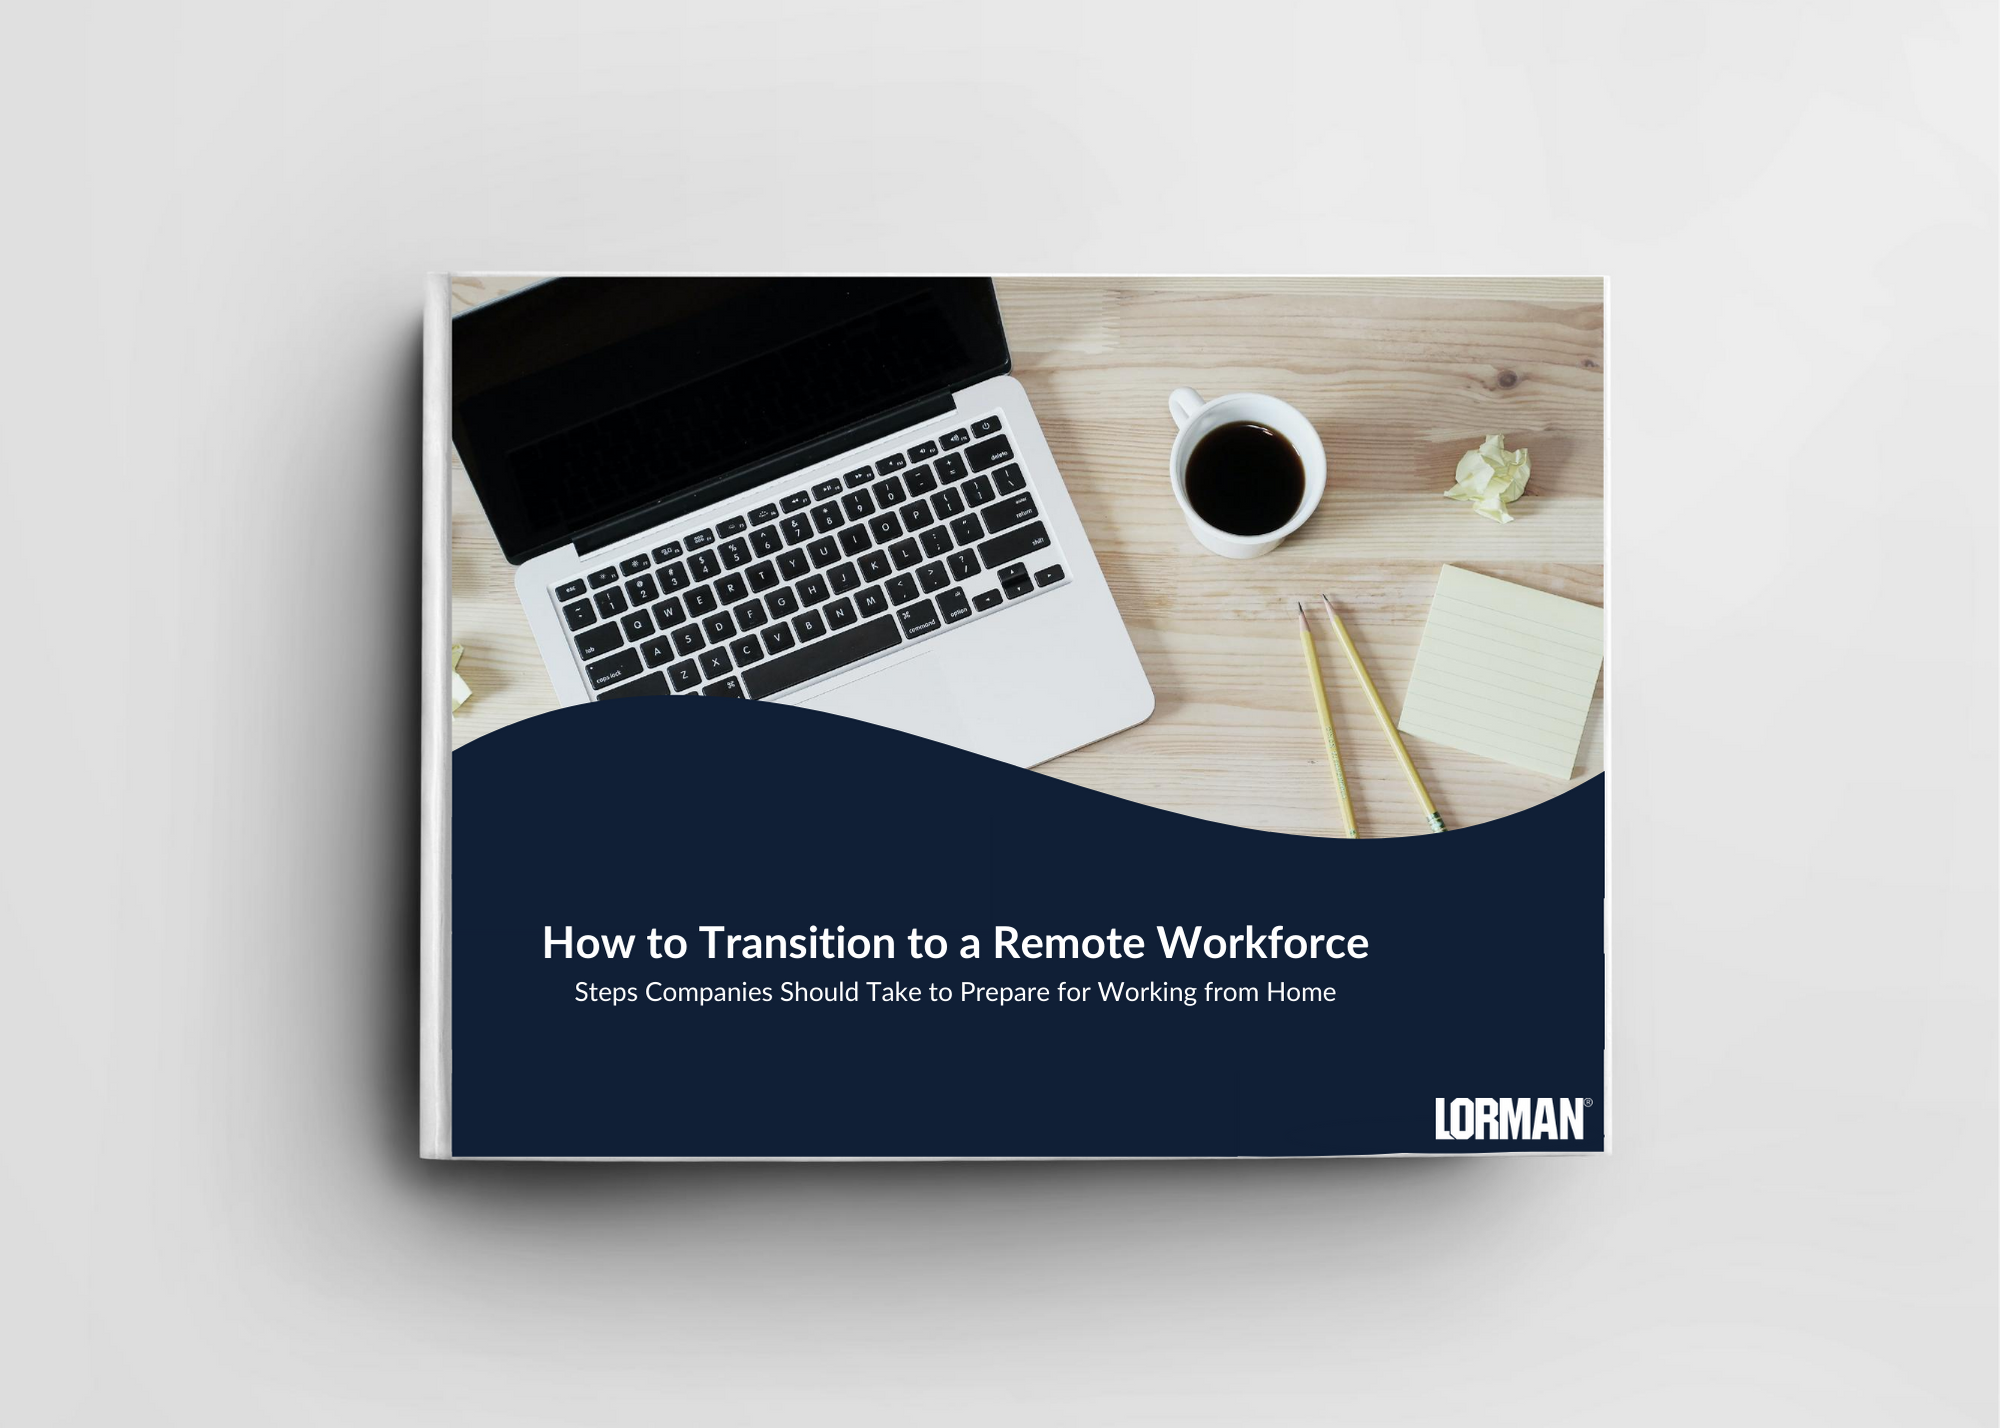 How to Transition to a Remote Workforce: Steps Companies Should Take to Prepare for Working from Home [eBook]